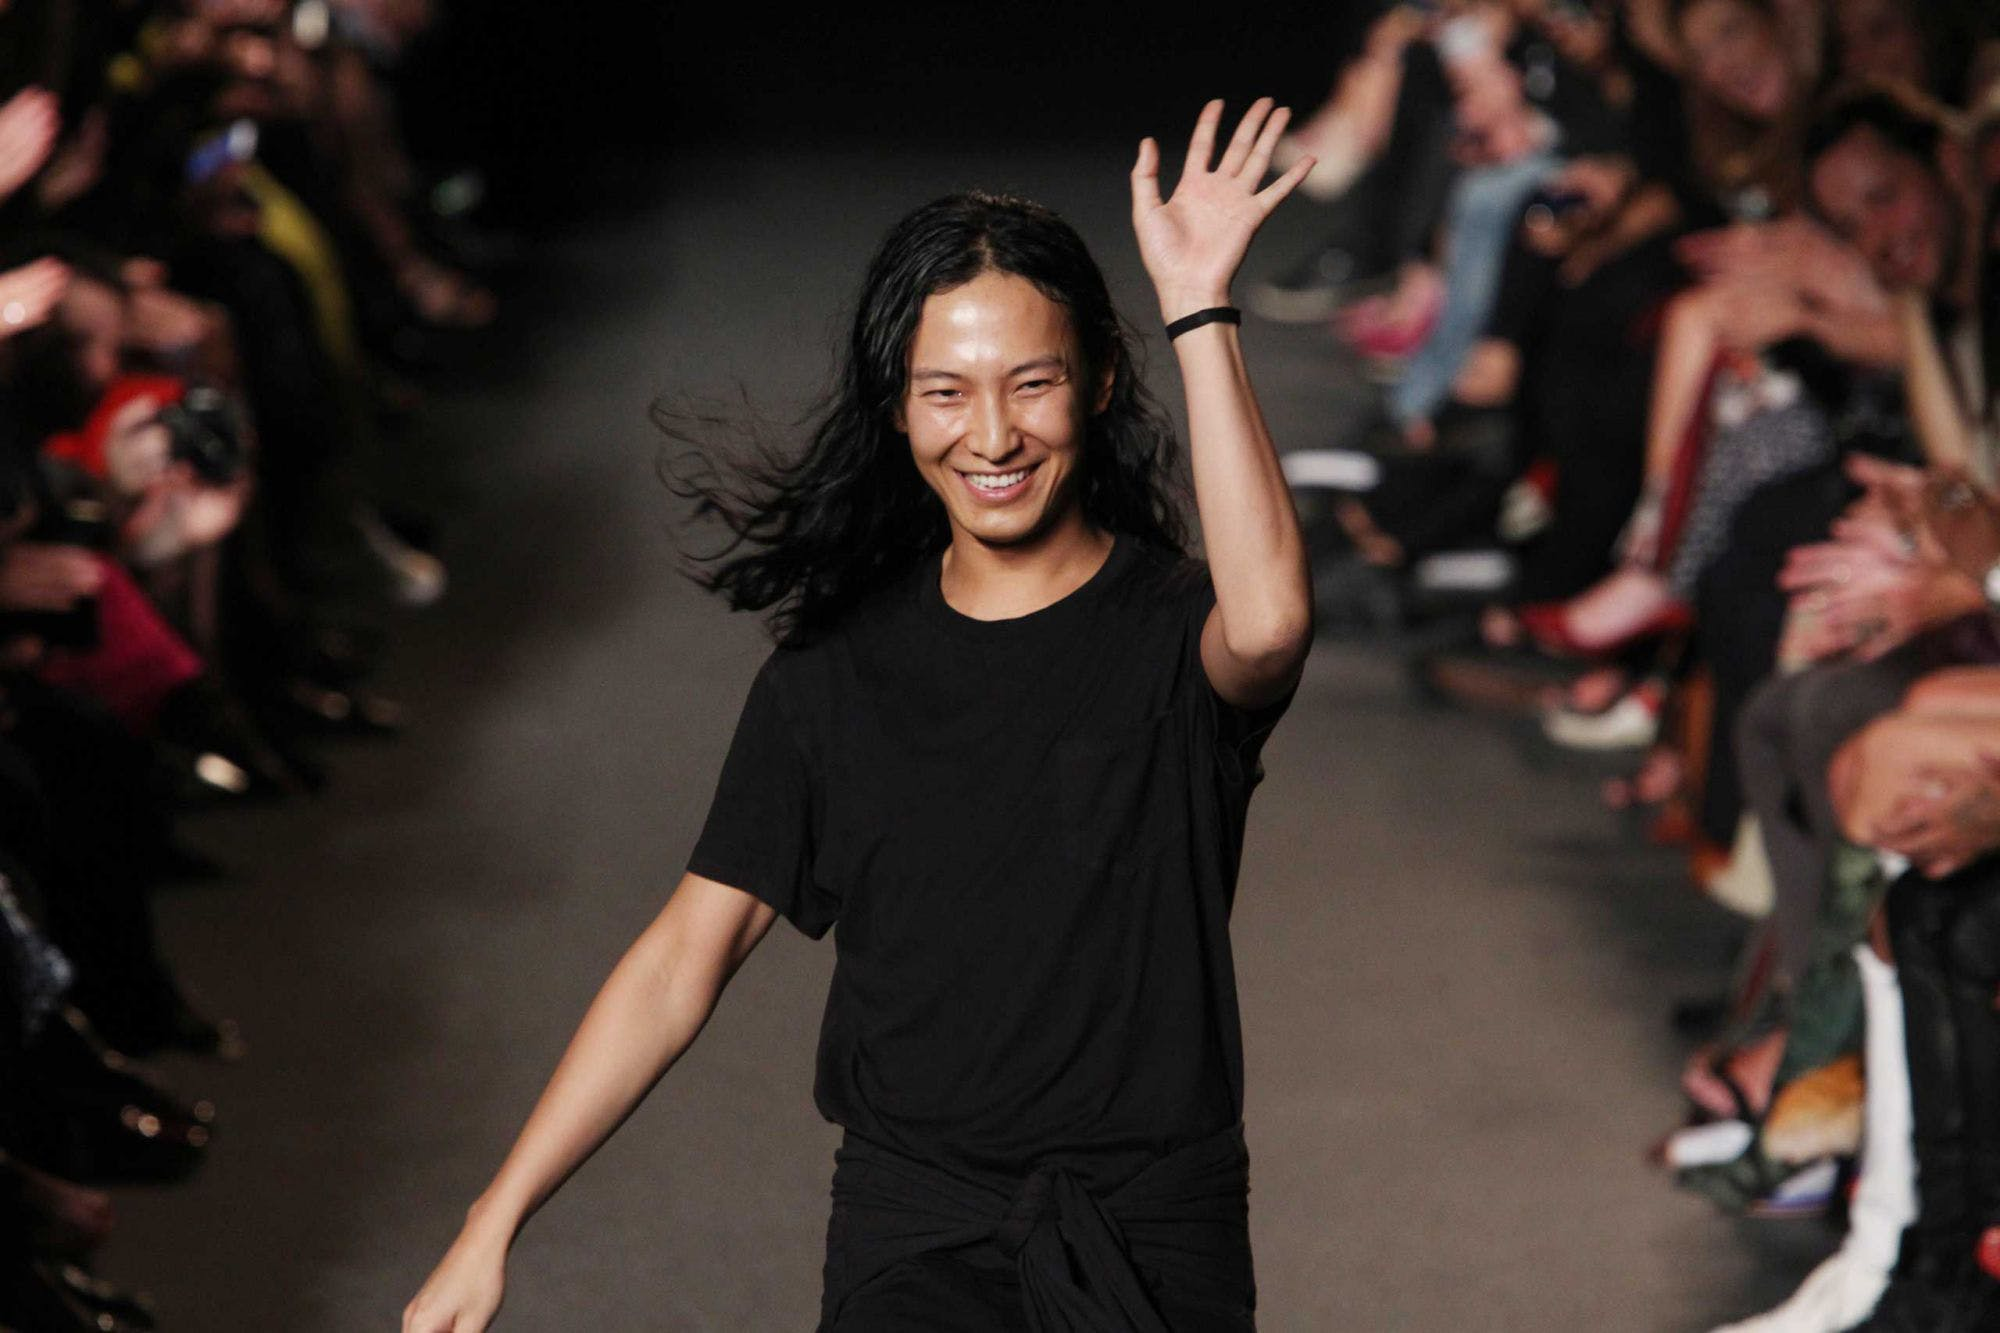 ALEXANDER WANG PUBLISHED A BLM STATEMENT ON COMPANY'S WEBSITE